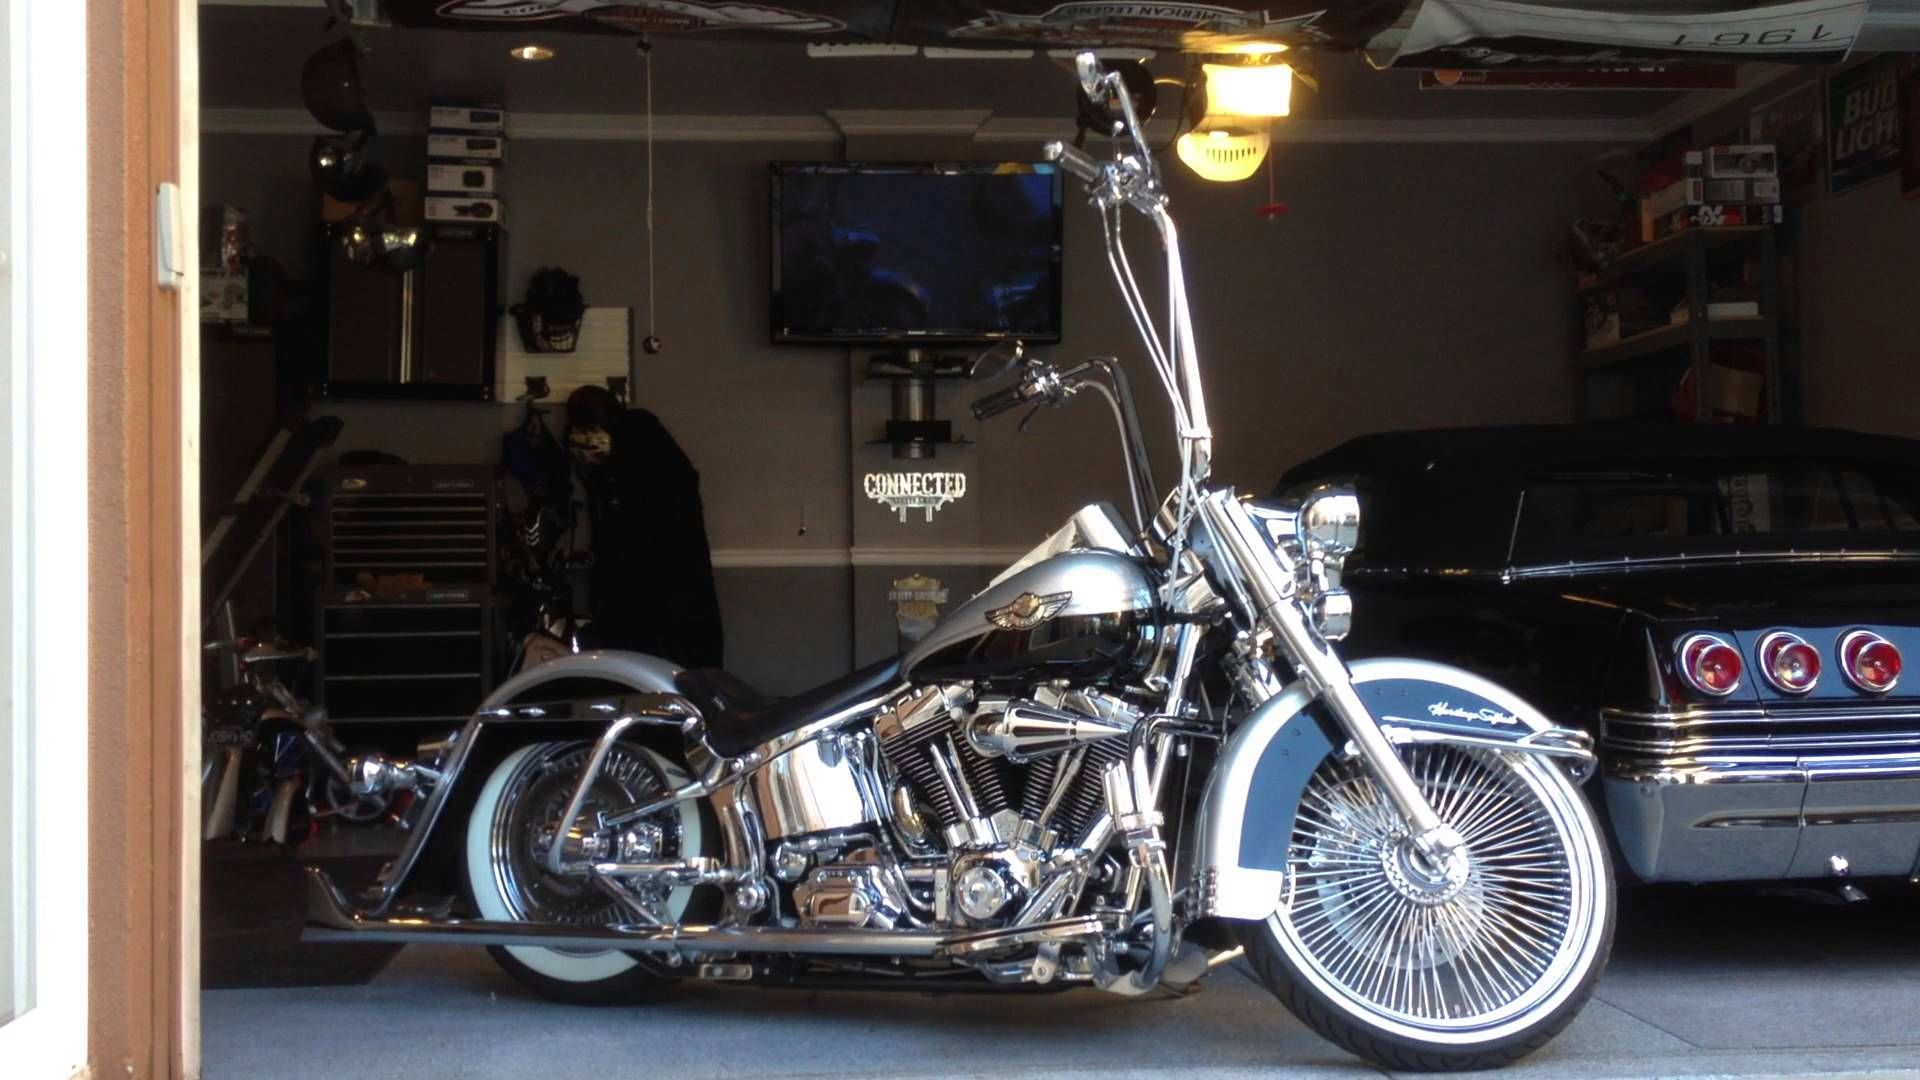 Harley Heritage Softail For Sale California >> softail deluxe lowrider - Google Search | Harley Davidson Softail Deluxe | Pinterest | Harley ...